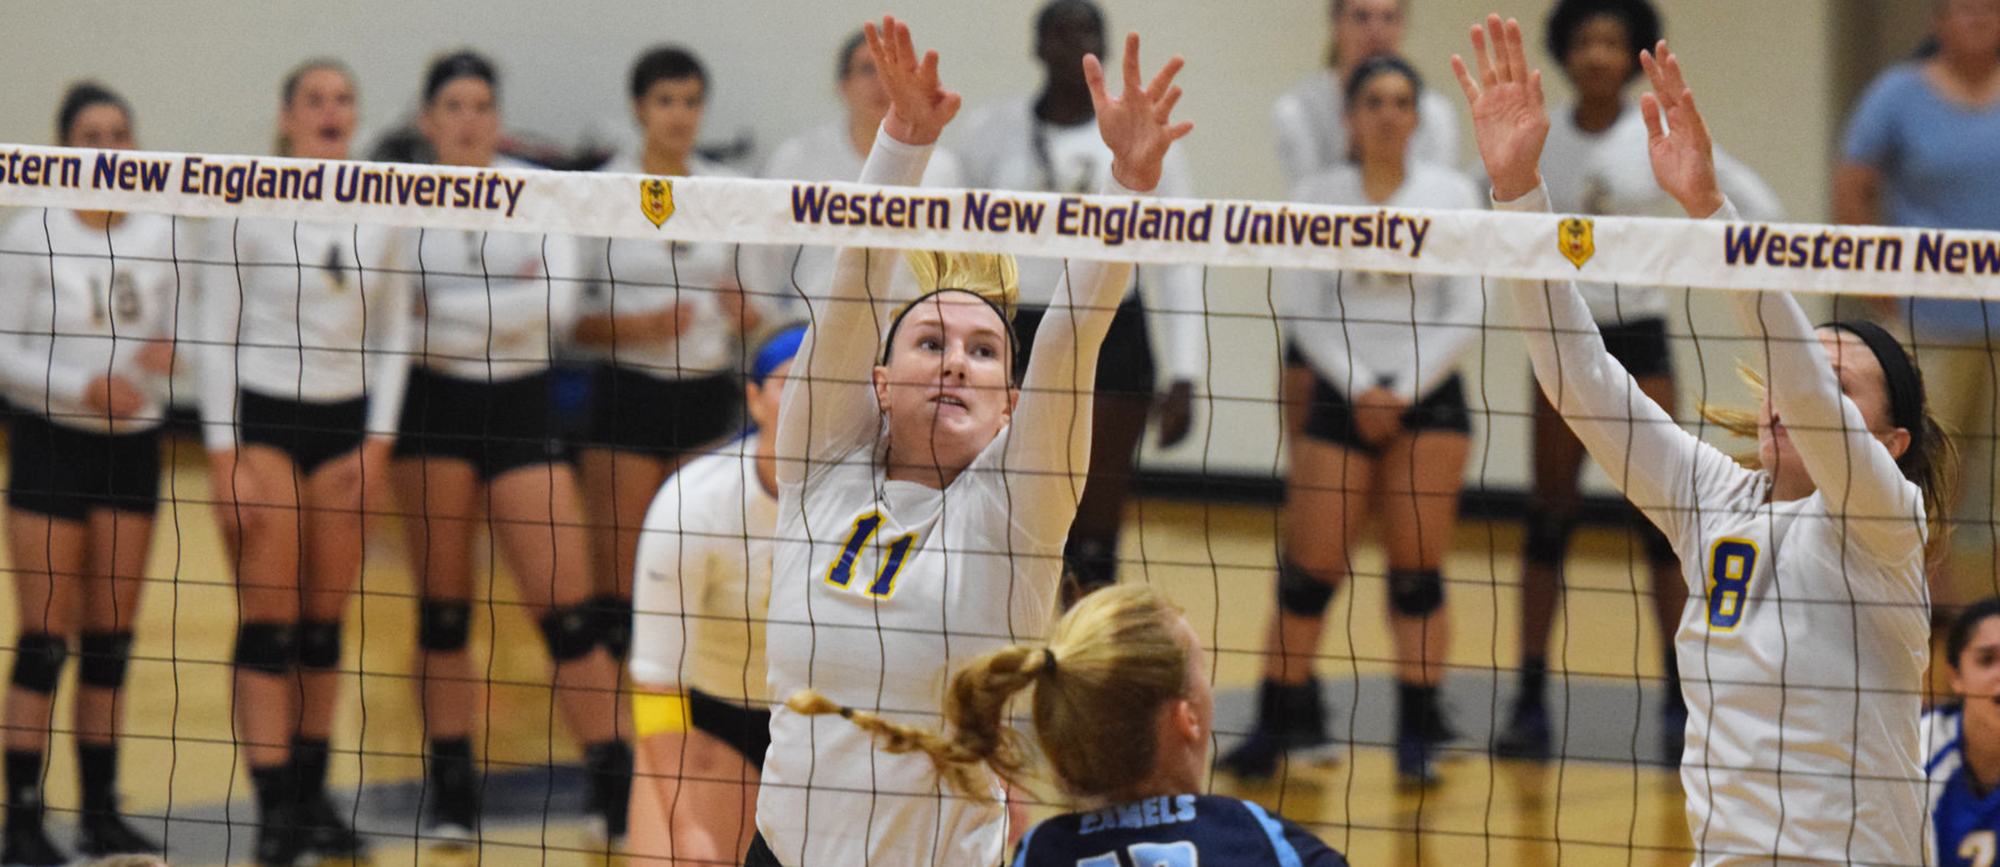 Junior Cassie Holmes recorded six kills and three blocks in Western New England's 3-0 loss to Keene State on Thursday. (Photo by Rachael Margossian)